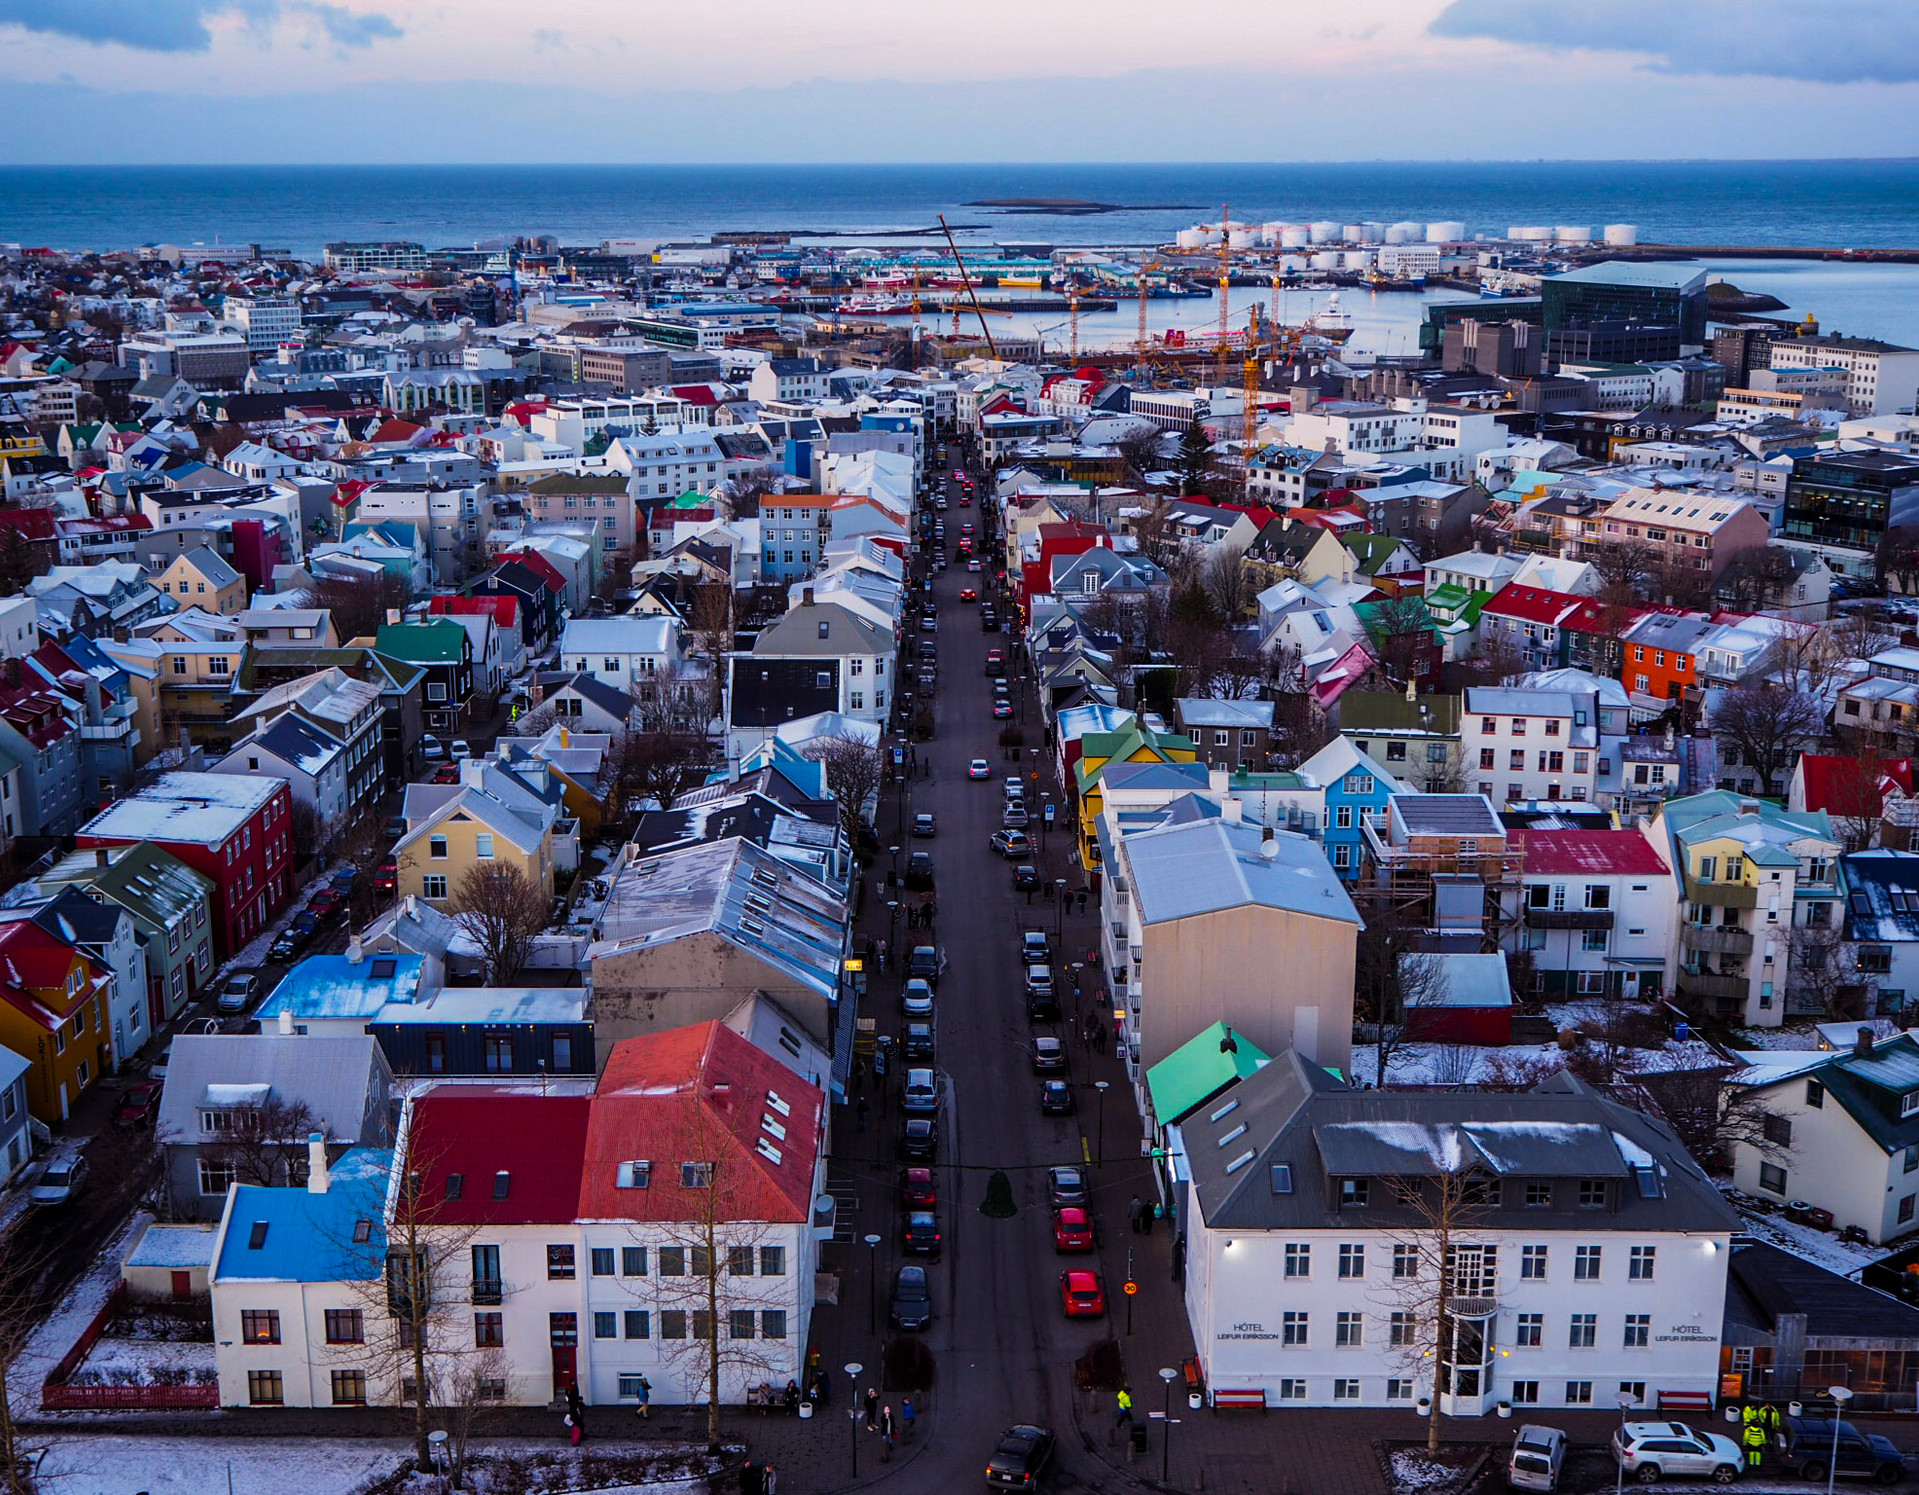 View of Reykjavik from the top of Hallgrímskirkja